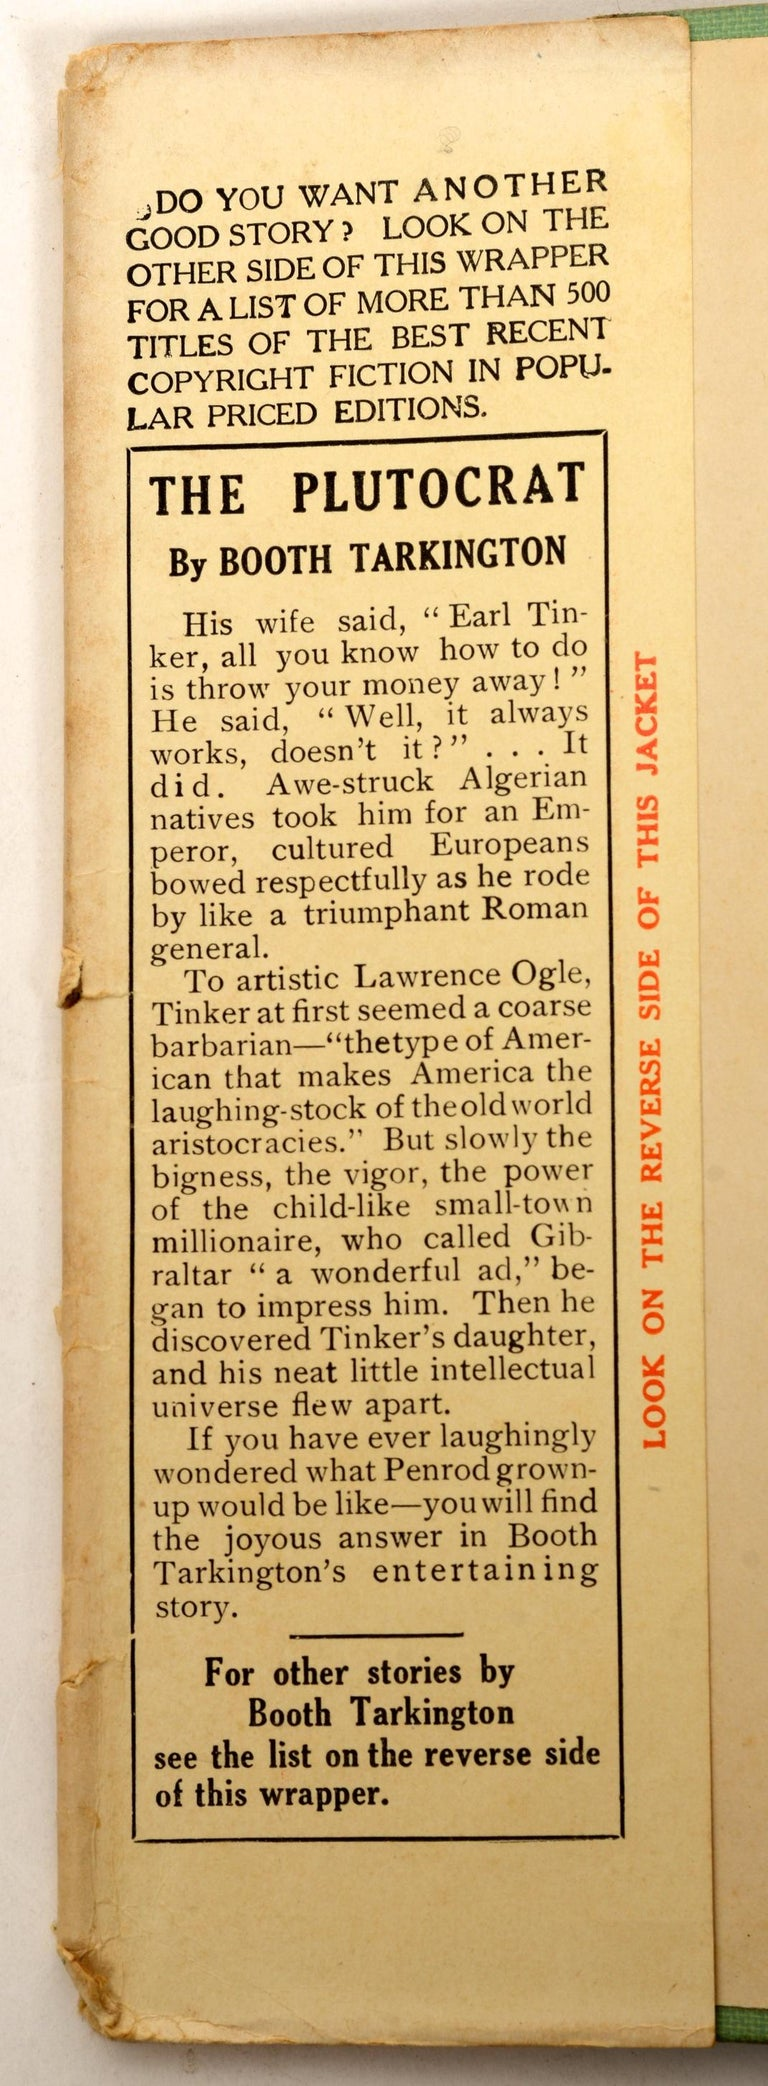 The Plutocrat by Booth Tarkington, First Edition In Fair Condition For Sale In valatie, NY